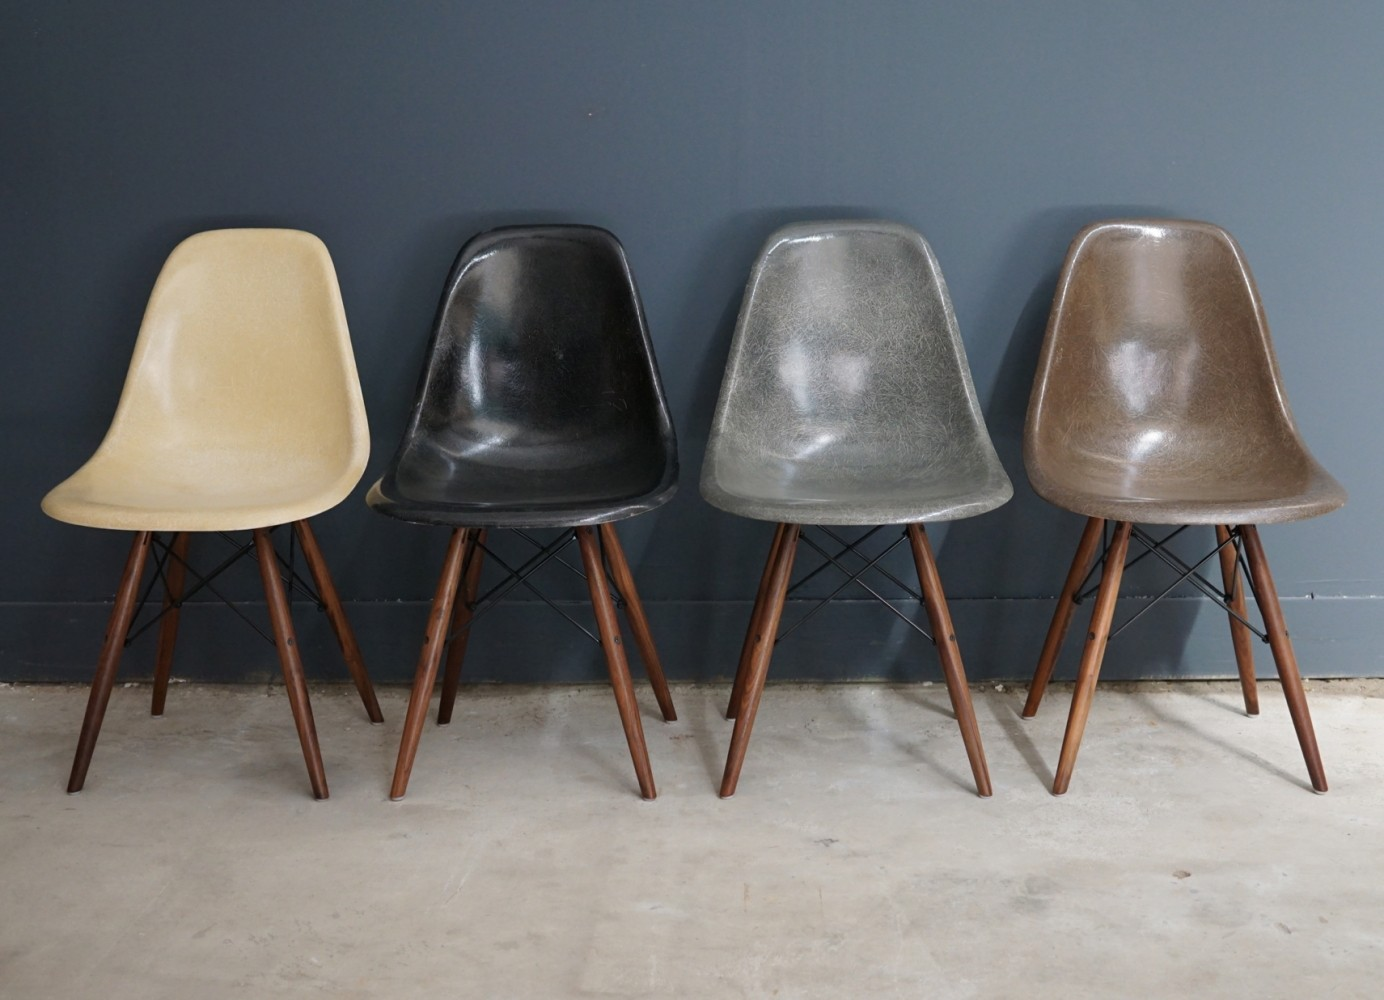 ray eames furniture. set of 4 dsw dinner chairs by charles u0026 ray eames for herman miller 1960s furniture a